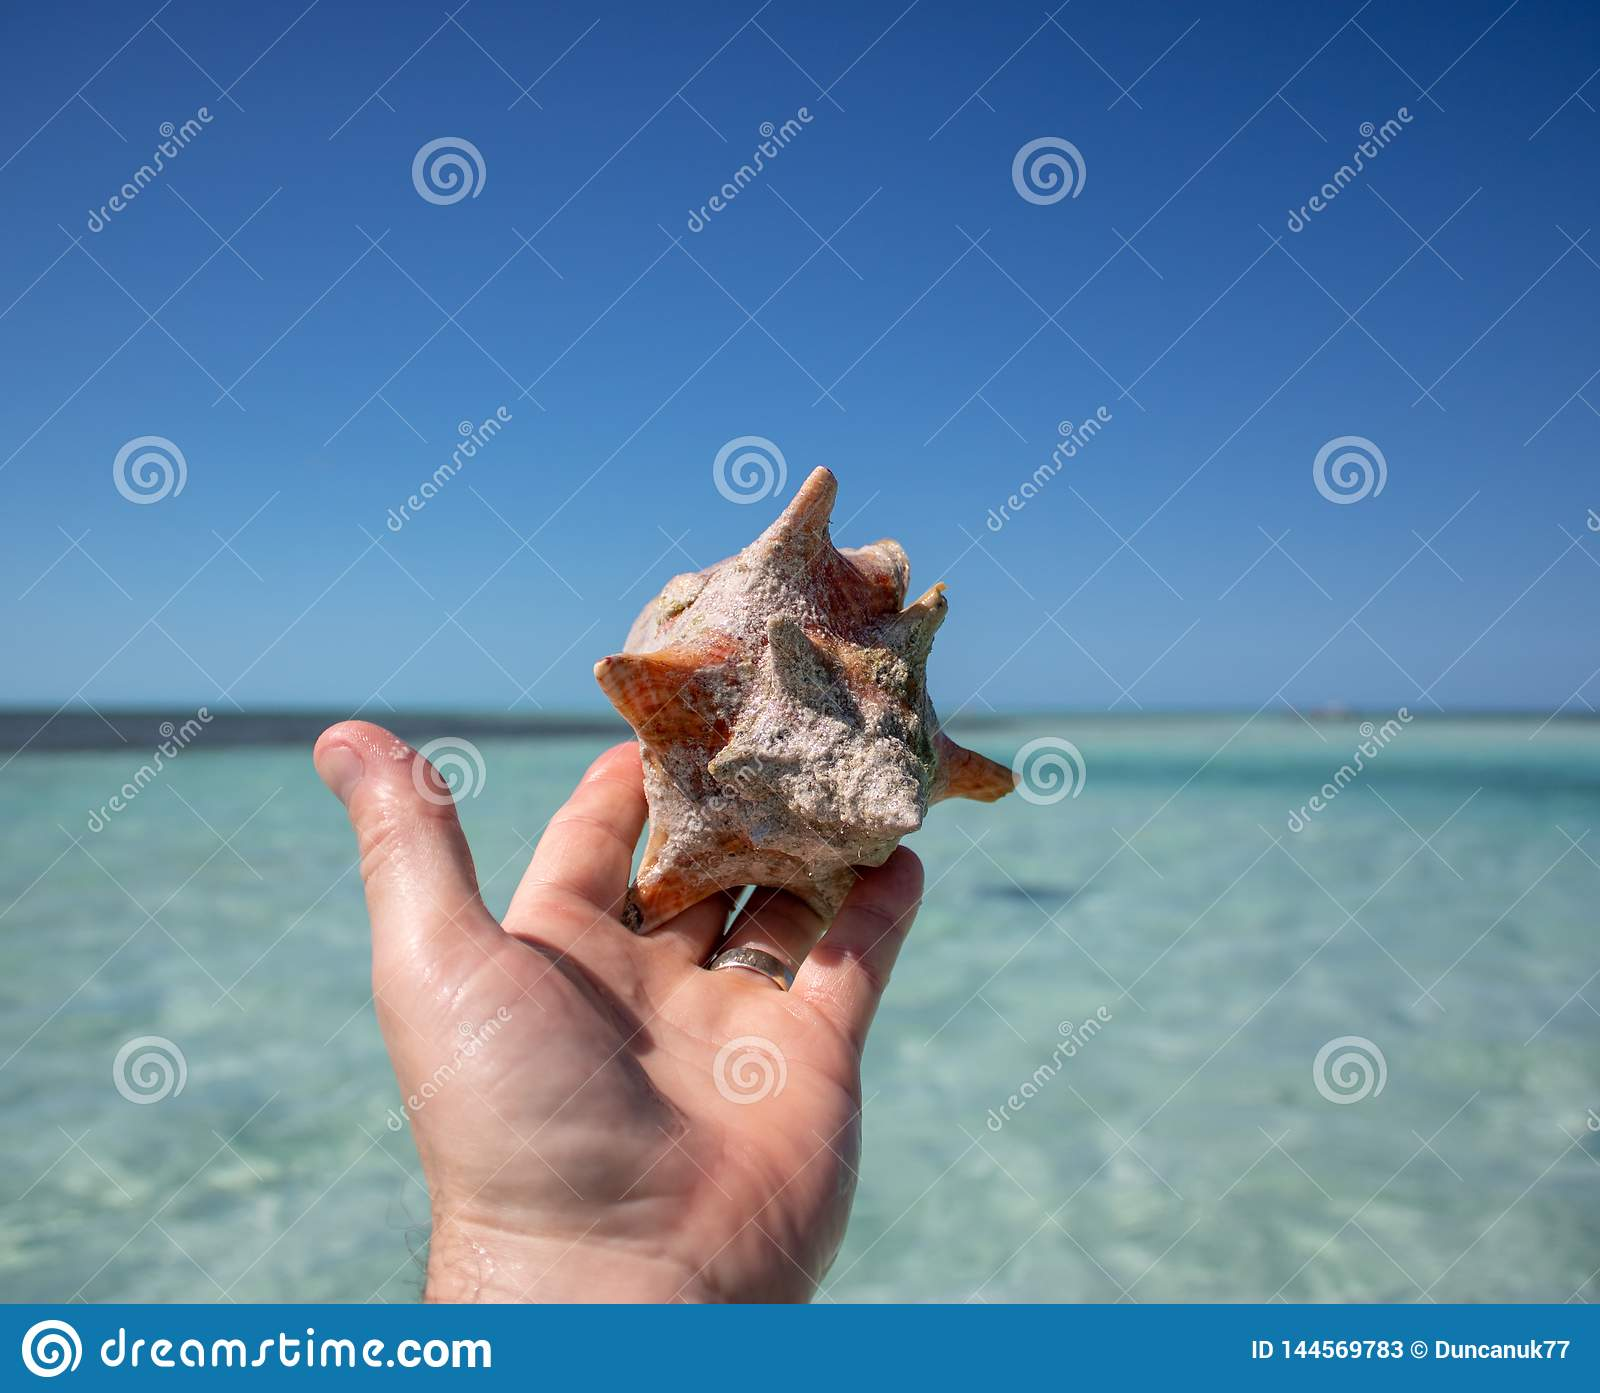 Beautiful shell on a tropical sandy beach being held by a man